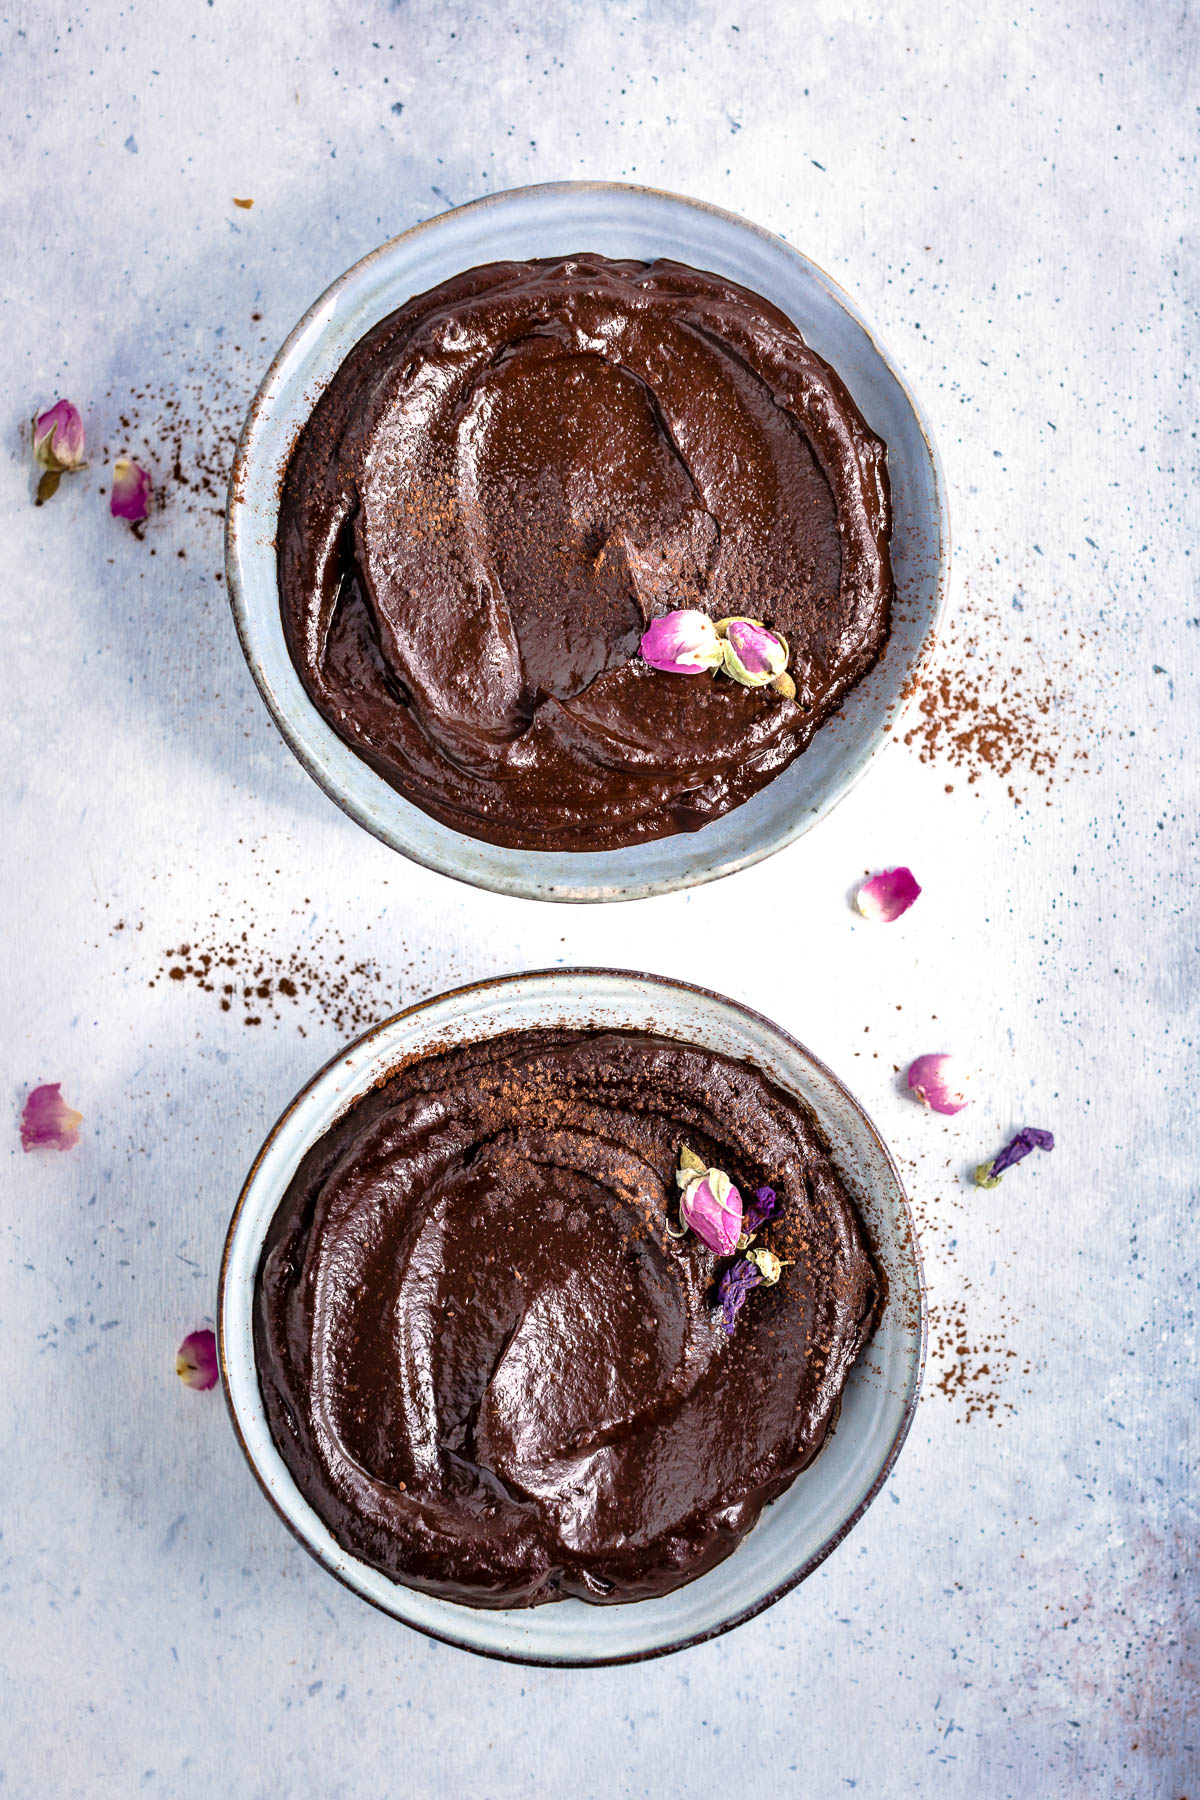 #vegan CHOCOLATE AVOCADO DATE MOUSSE recipe with coffee glutenfree MOUSSE AVOCADO CACAO e DATTERI al caffe senza glutine senza zucchero senza lattosio.